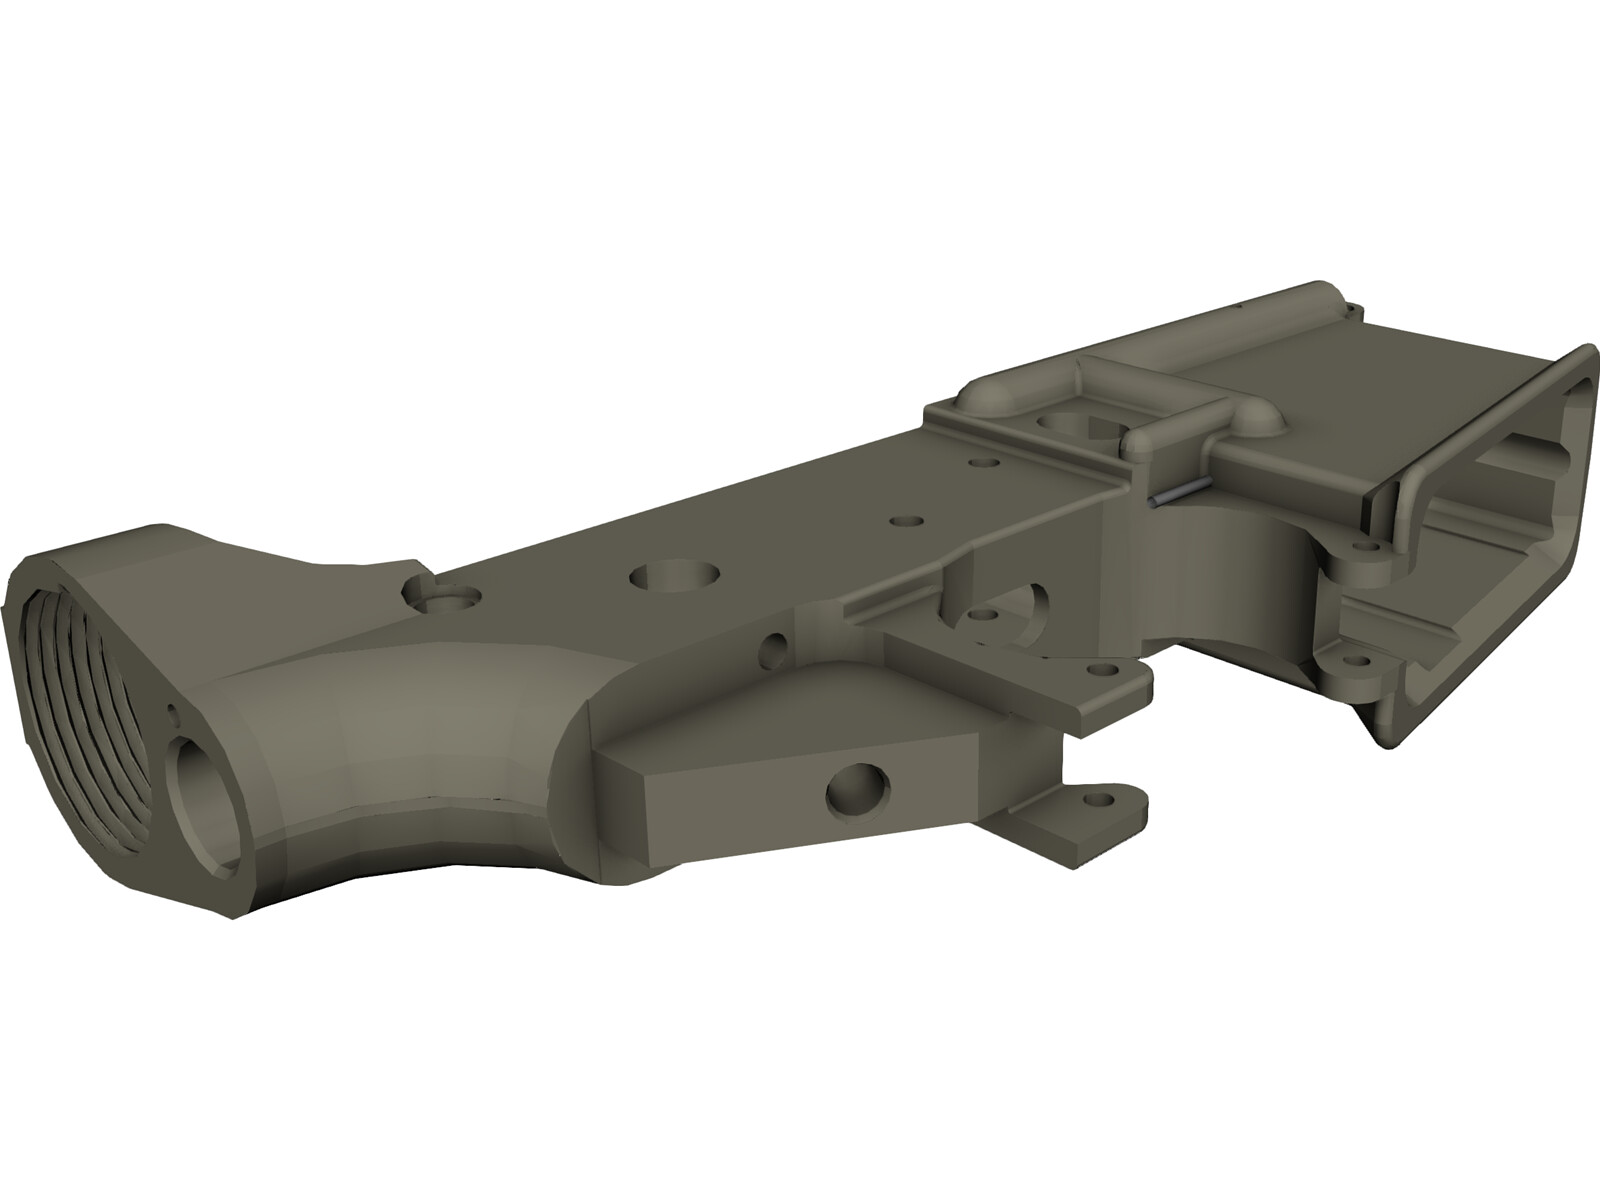 Ar 15 Lower Receiver 3d Cad Model Download 3d Cad Browser